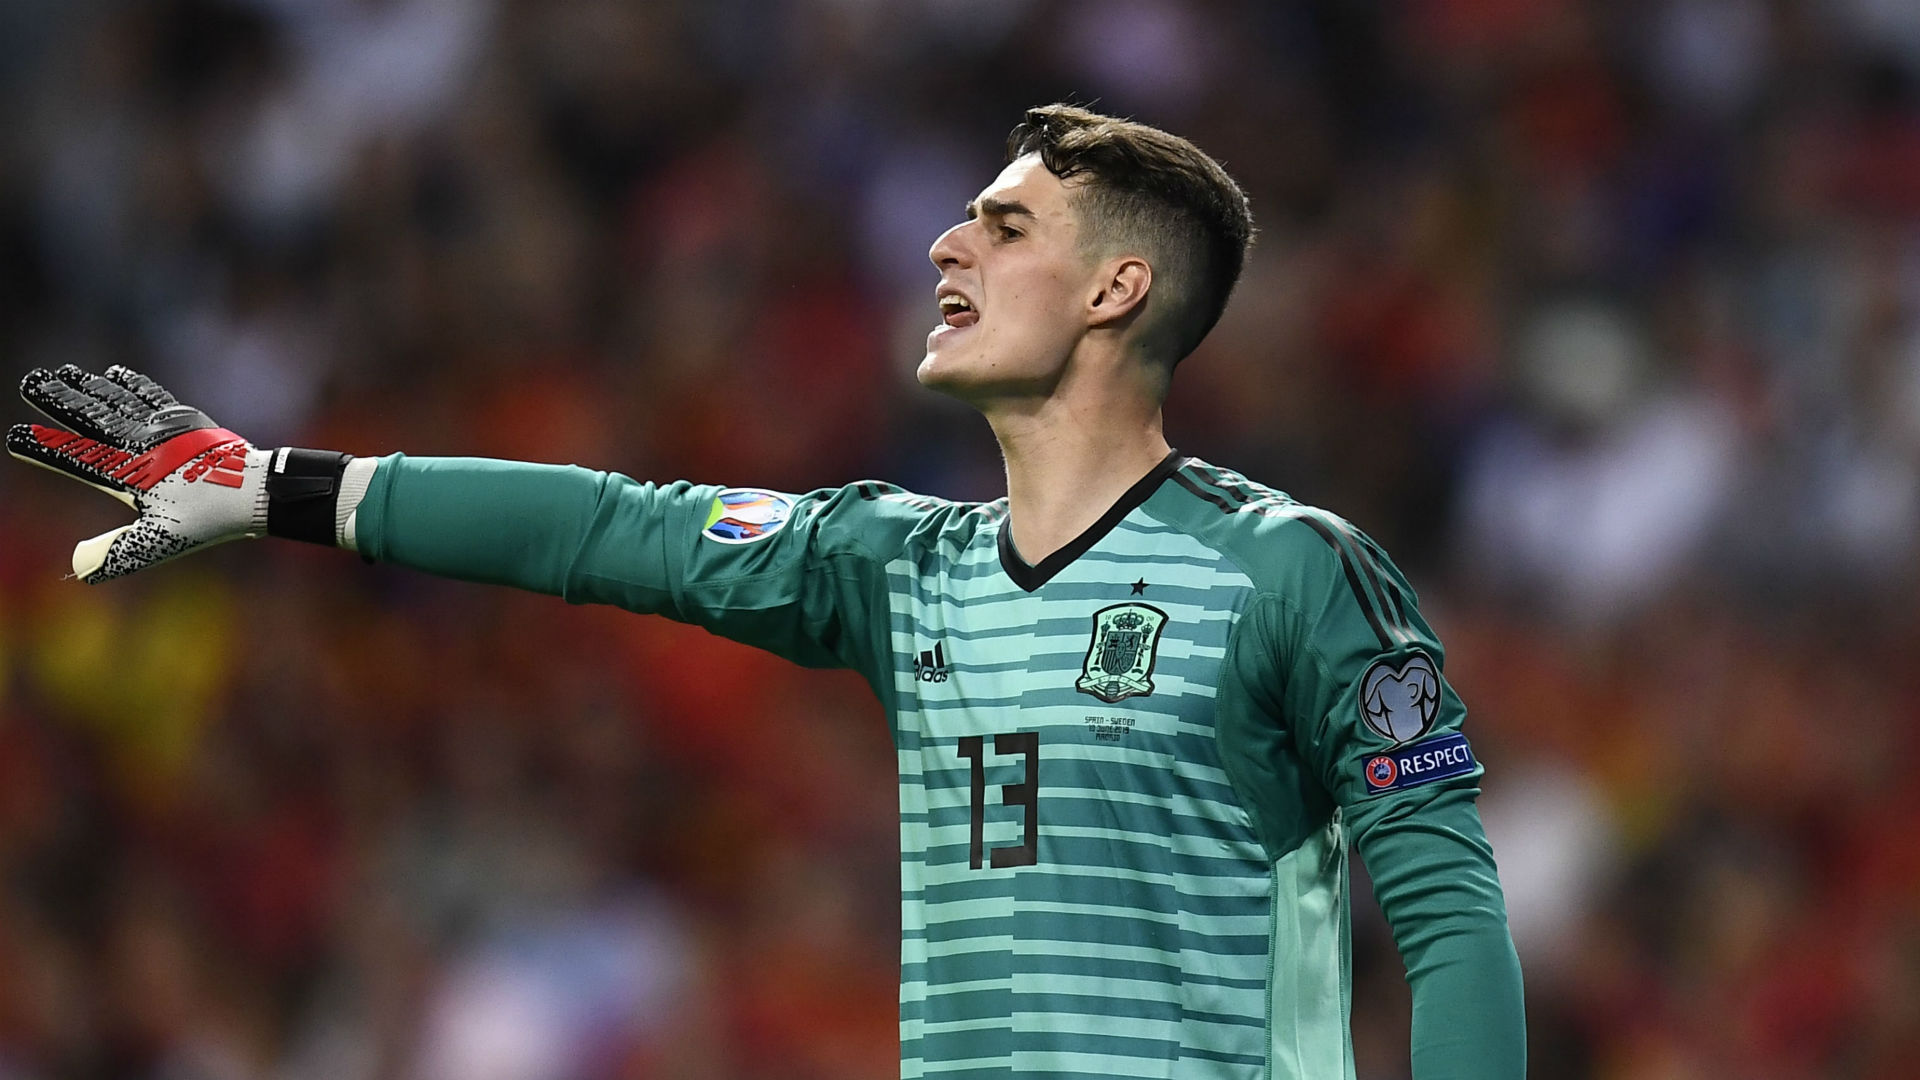 Spain Beats Sweden to Stay on Top of Euro 2020 Qualifying Group